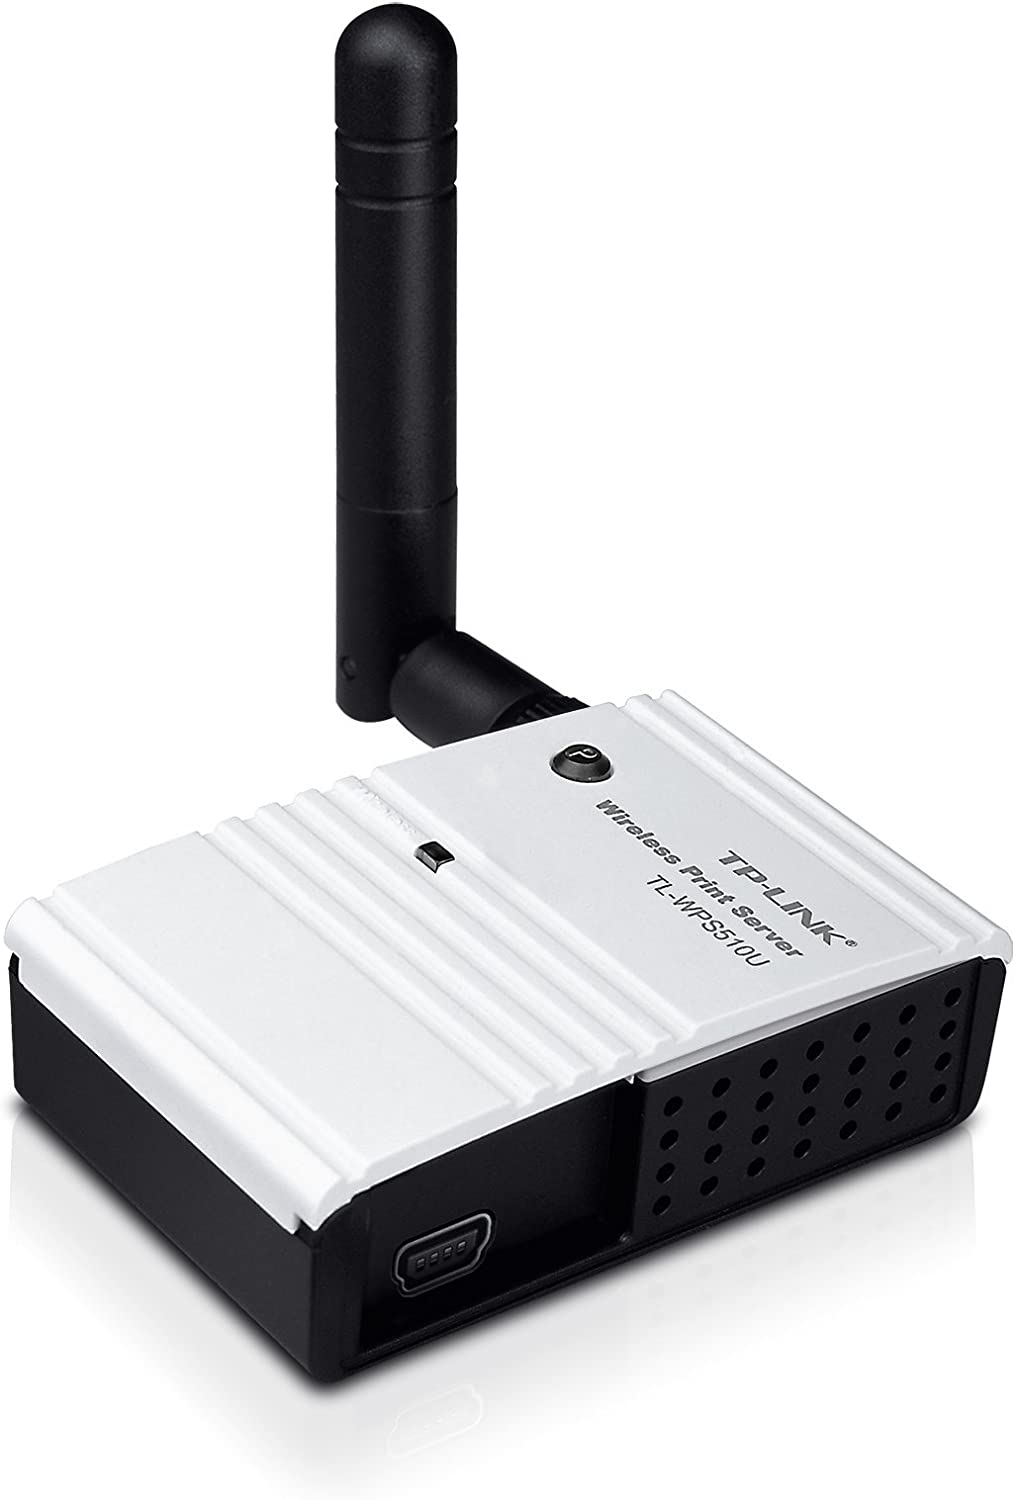 TP-LINK TL-WPS510U 150Mbps Wireless Print Server, USB 2.0, Detachable Antenna